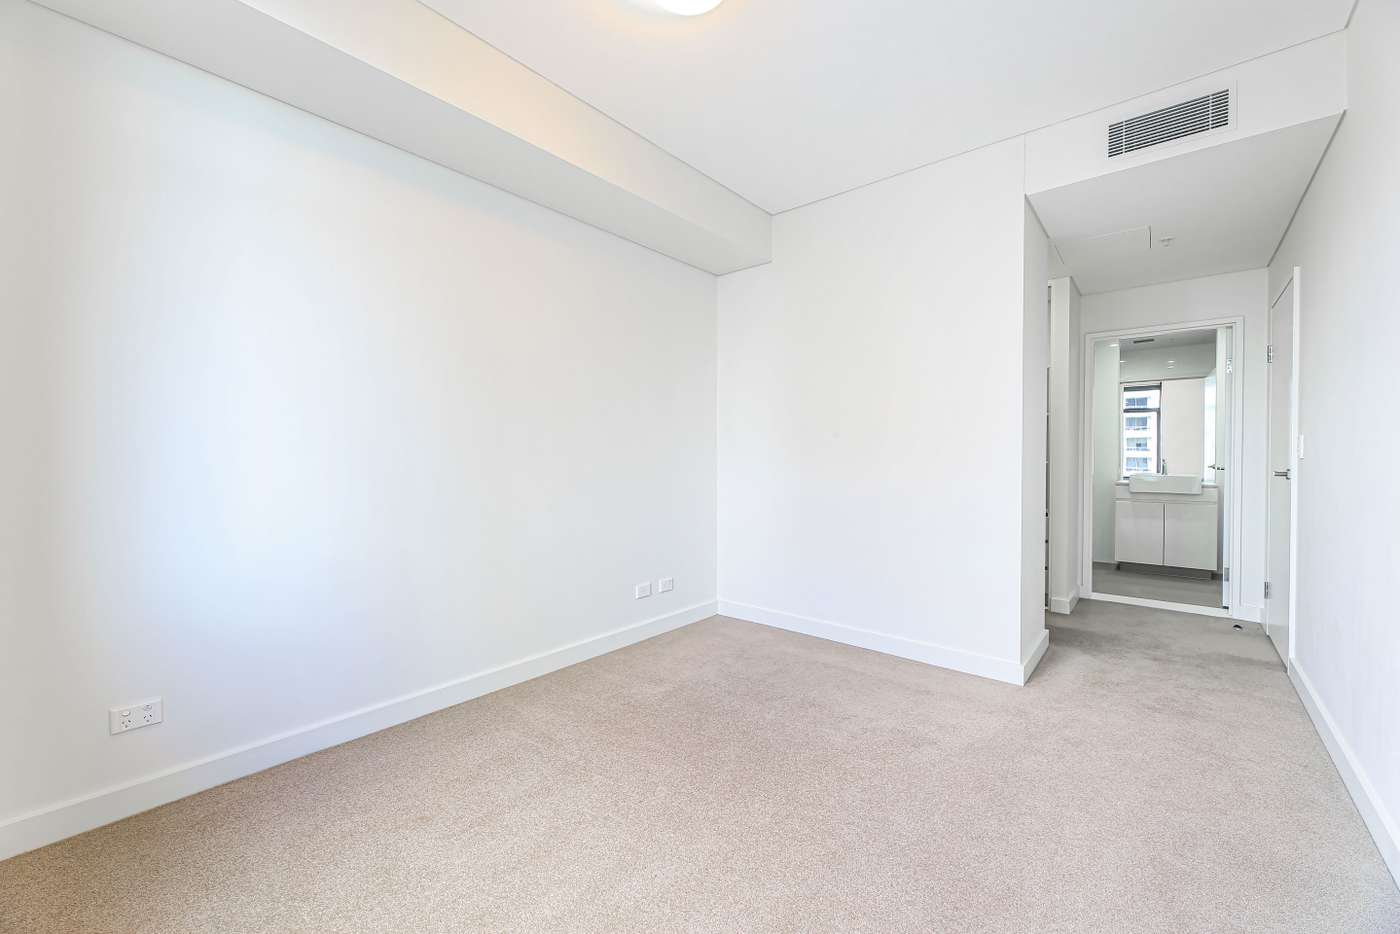 Fifth view of Homely apartment listing, 1609/438 Victoria Avenue, Chatswood NSW 2067